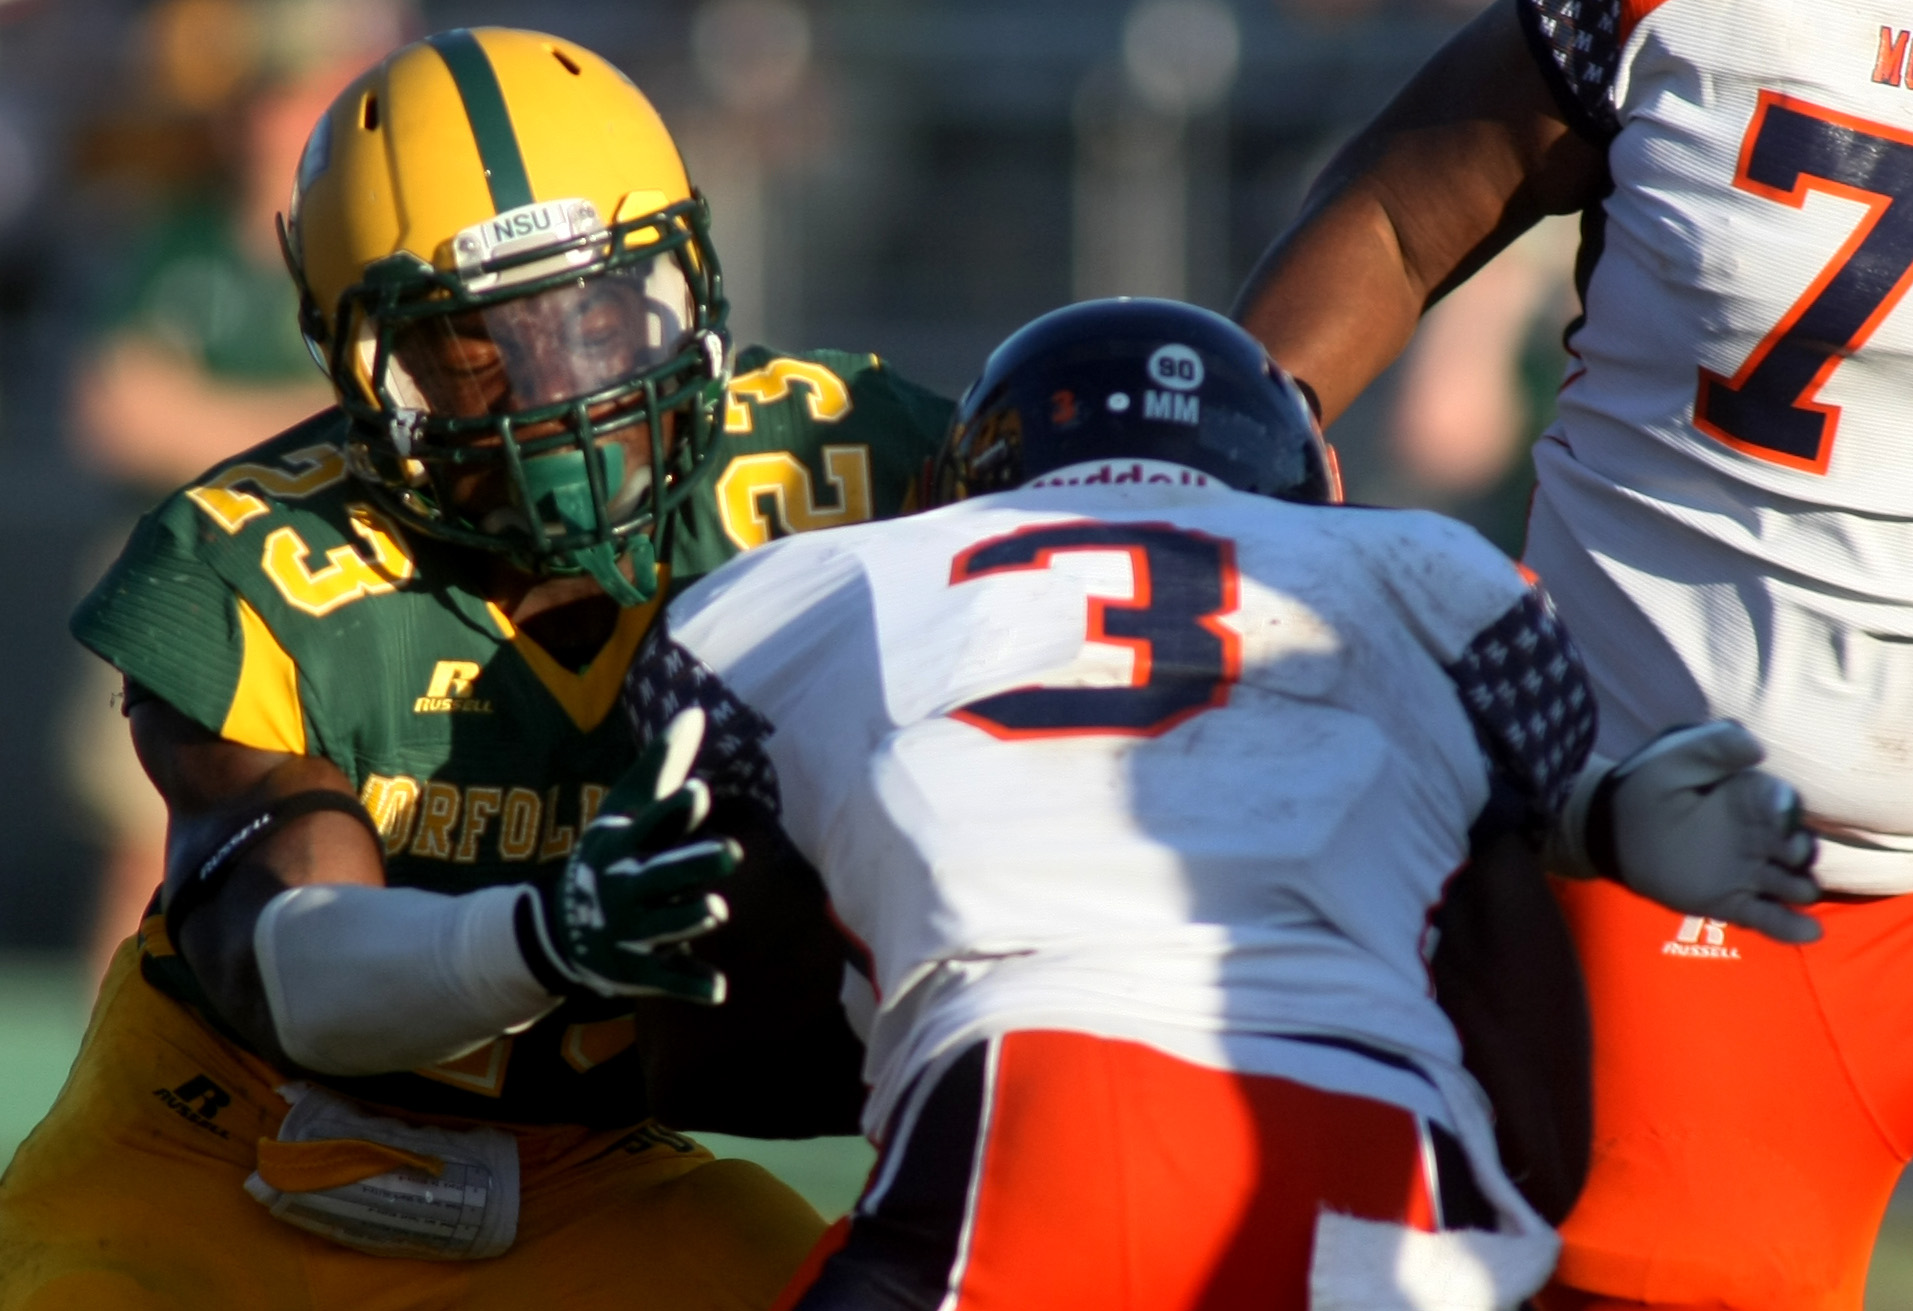 Norfolk State's Marcell Coke, left, tackles Morgan State's Herb Walker, Jr during NSU's 15-14 win, Saturday, Sept. 27, 2014 at Dick Price Stadium in Norfolk.  (Jason Hirschfeld | For The Virginian-Pilot)